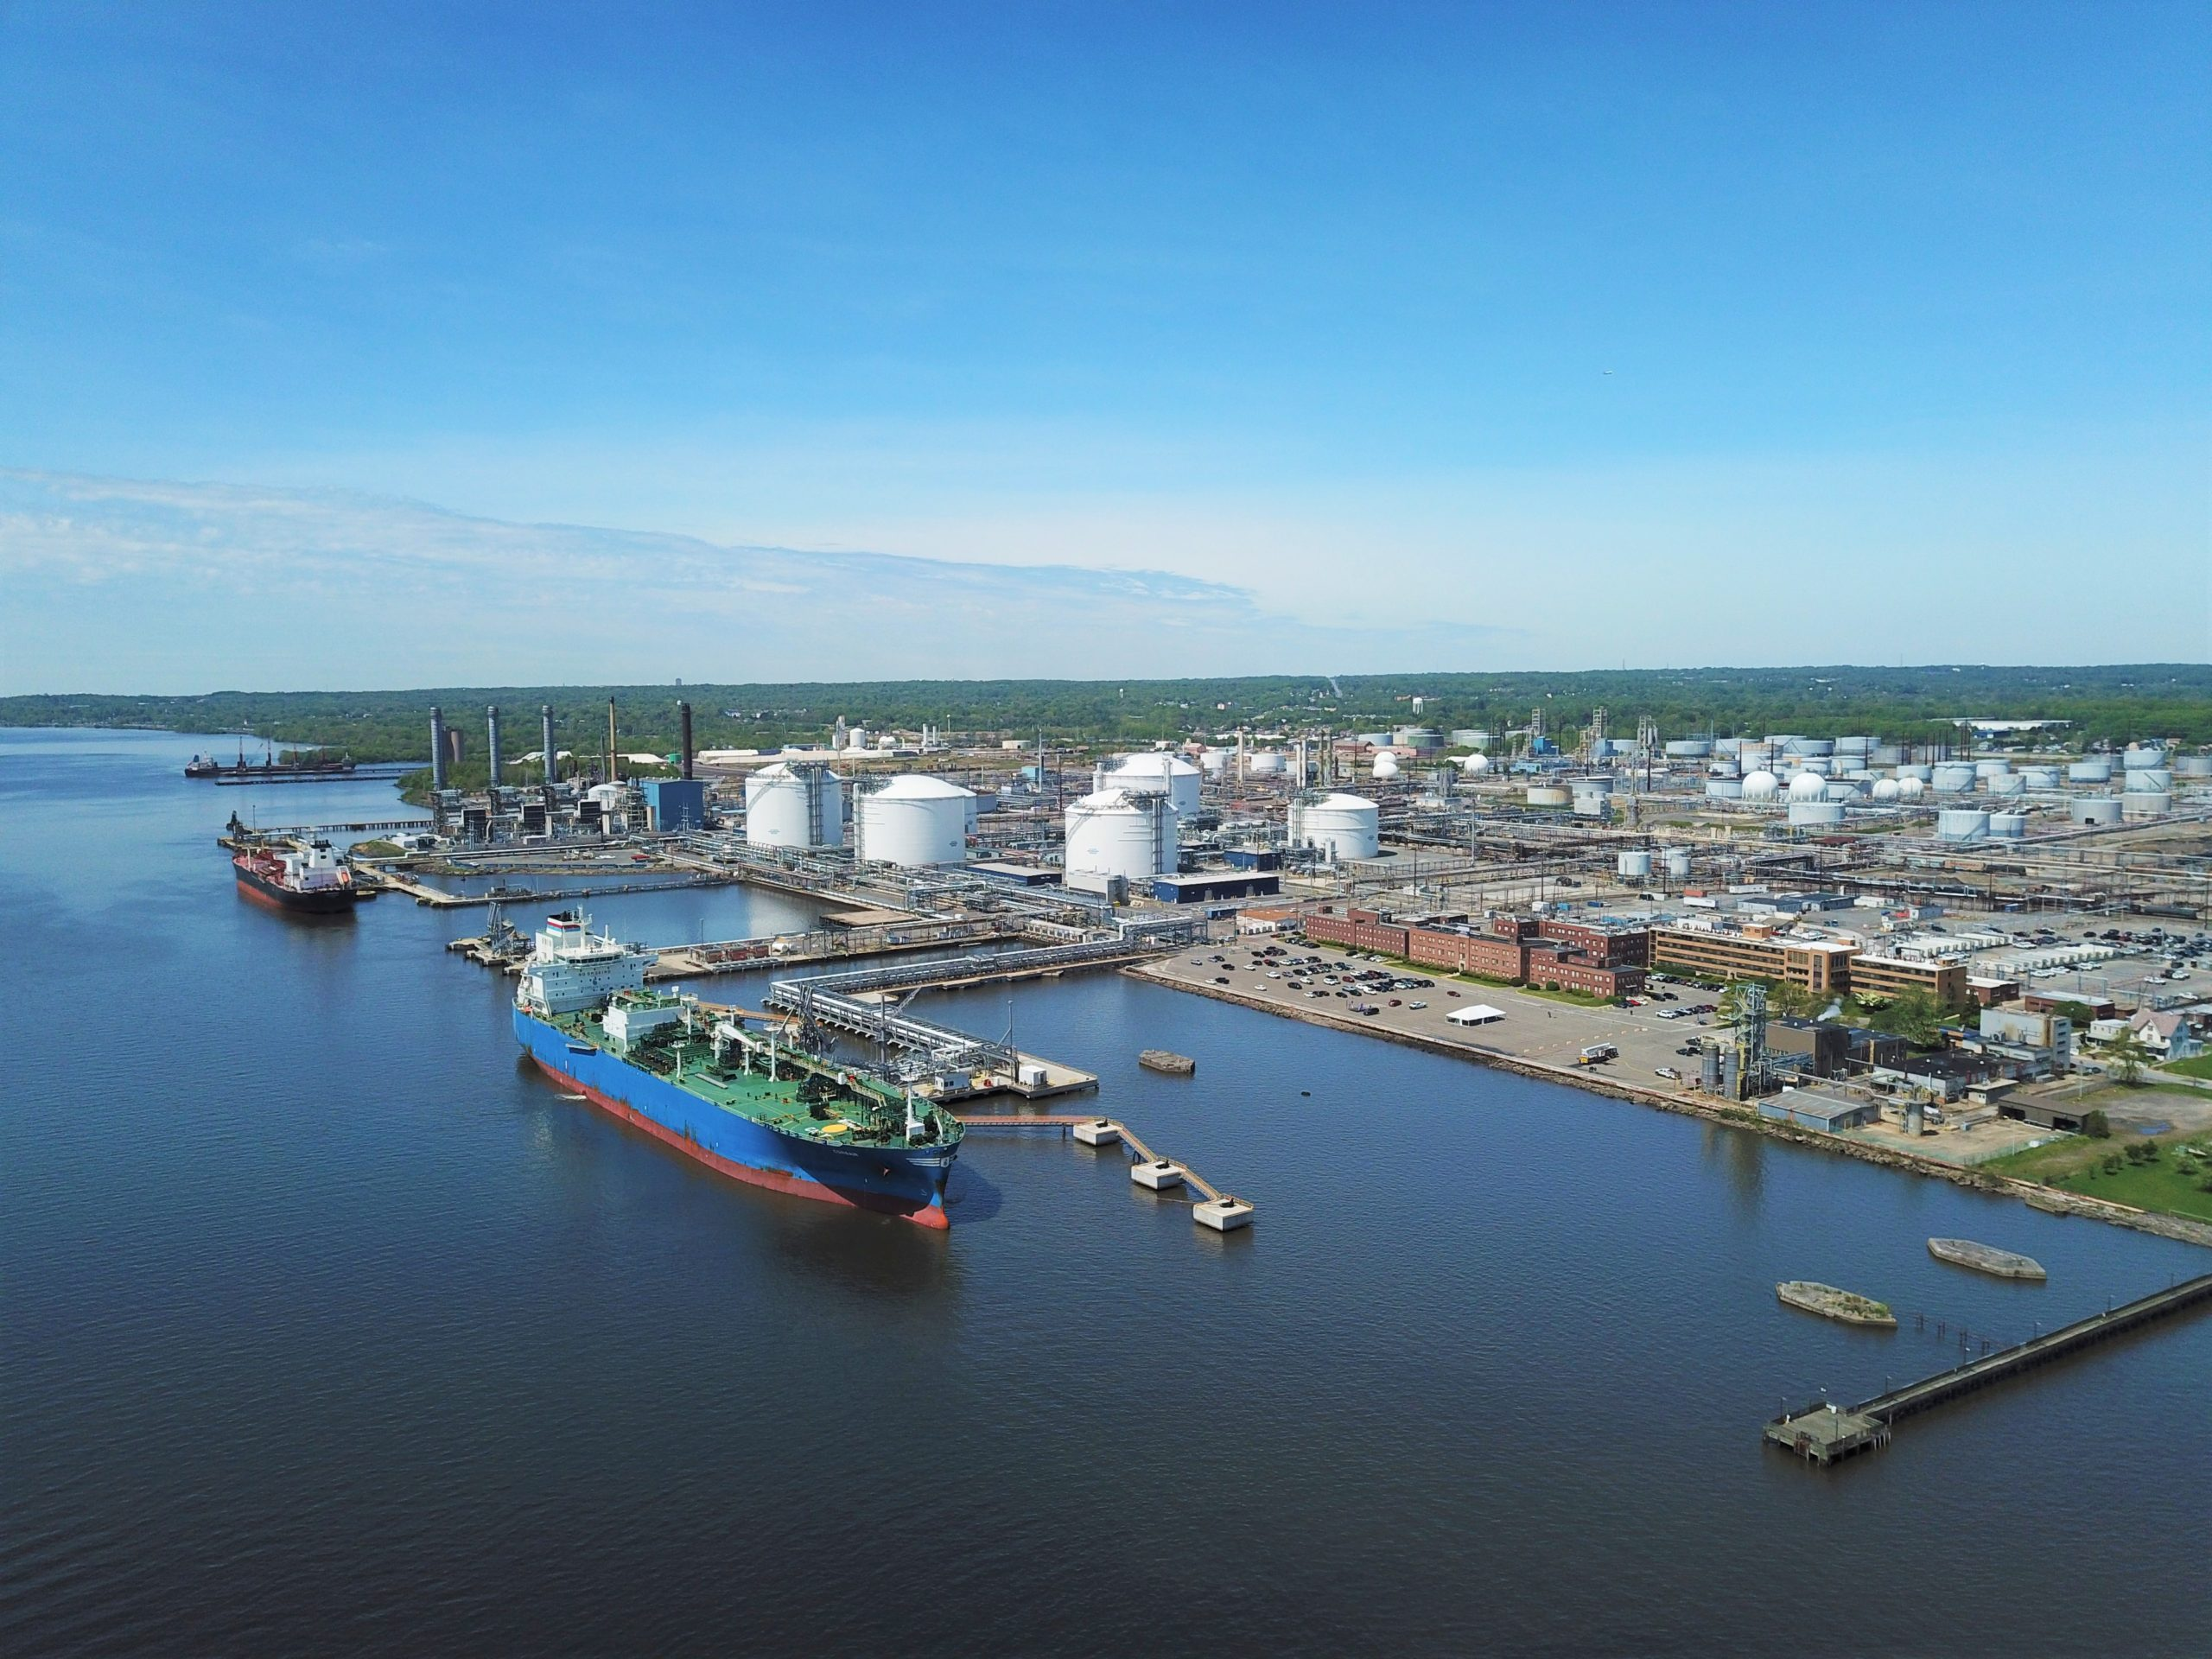 Mariner East 2 Gives Shipping Industry Along Delaware River 'a Much-Needed Shot in the Arm'